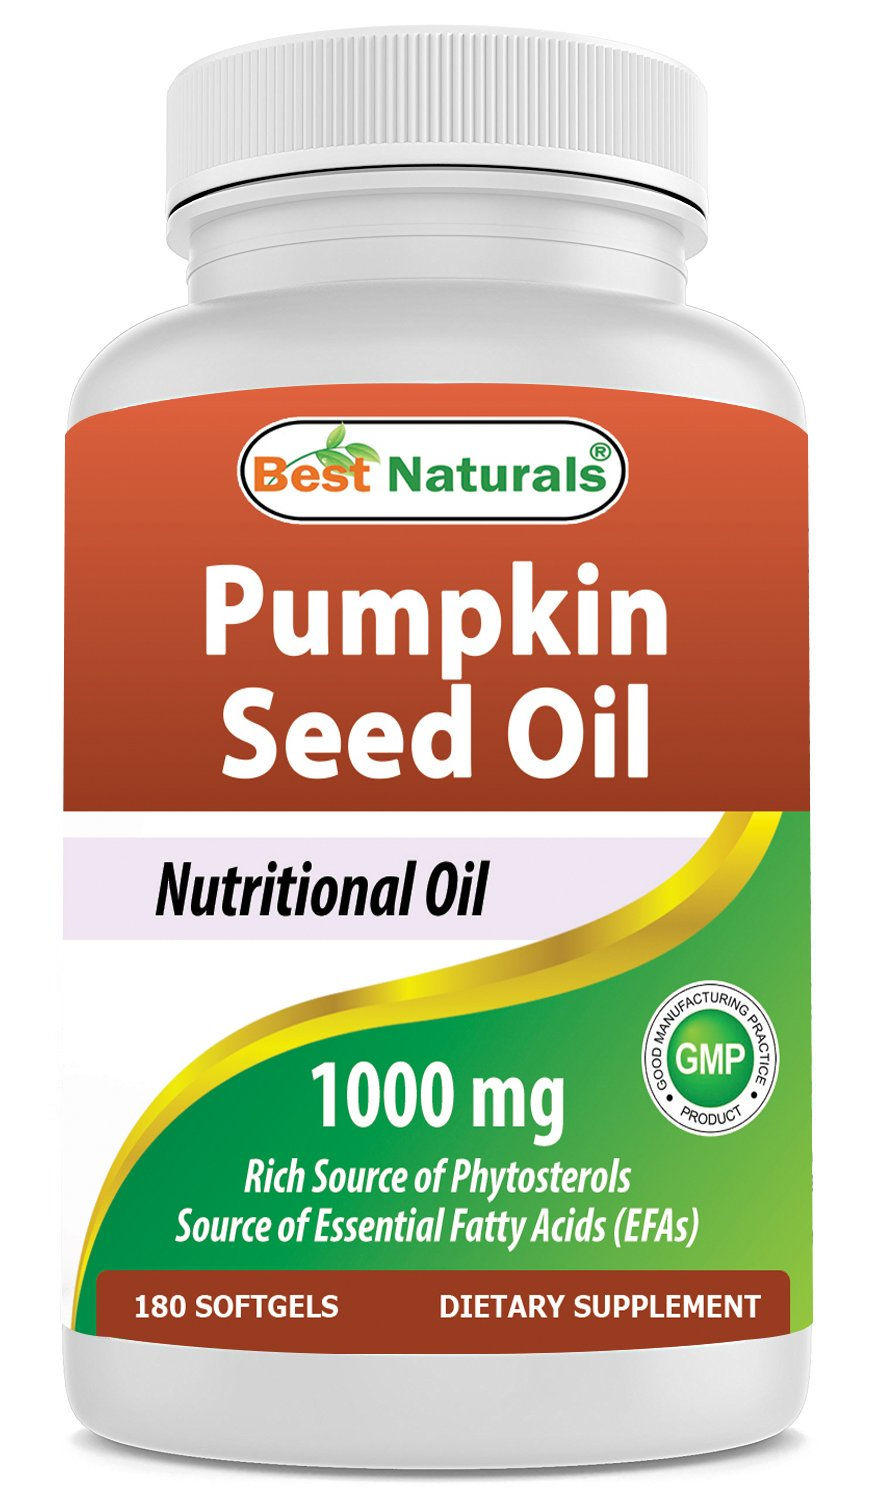 Best Naturals Pumpkin Seed Oil Capsules, 1000 mg, 180 Count